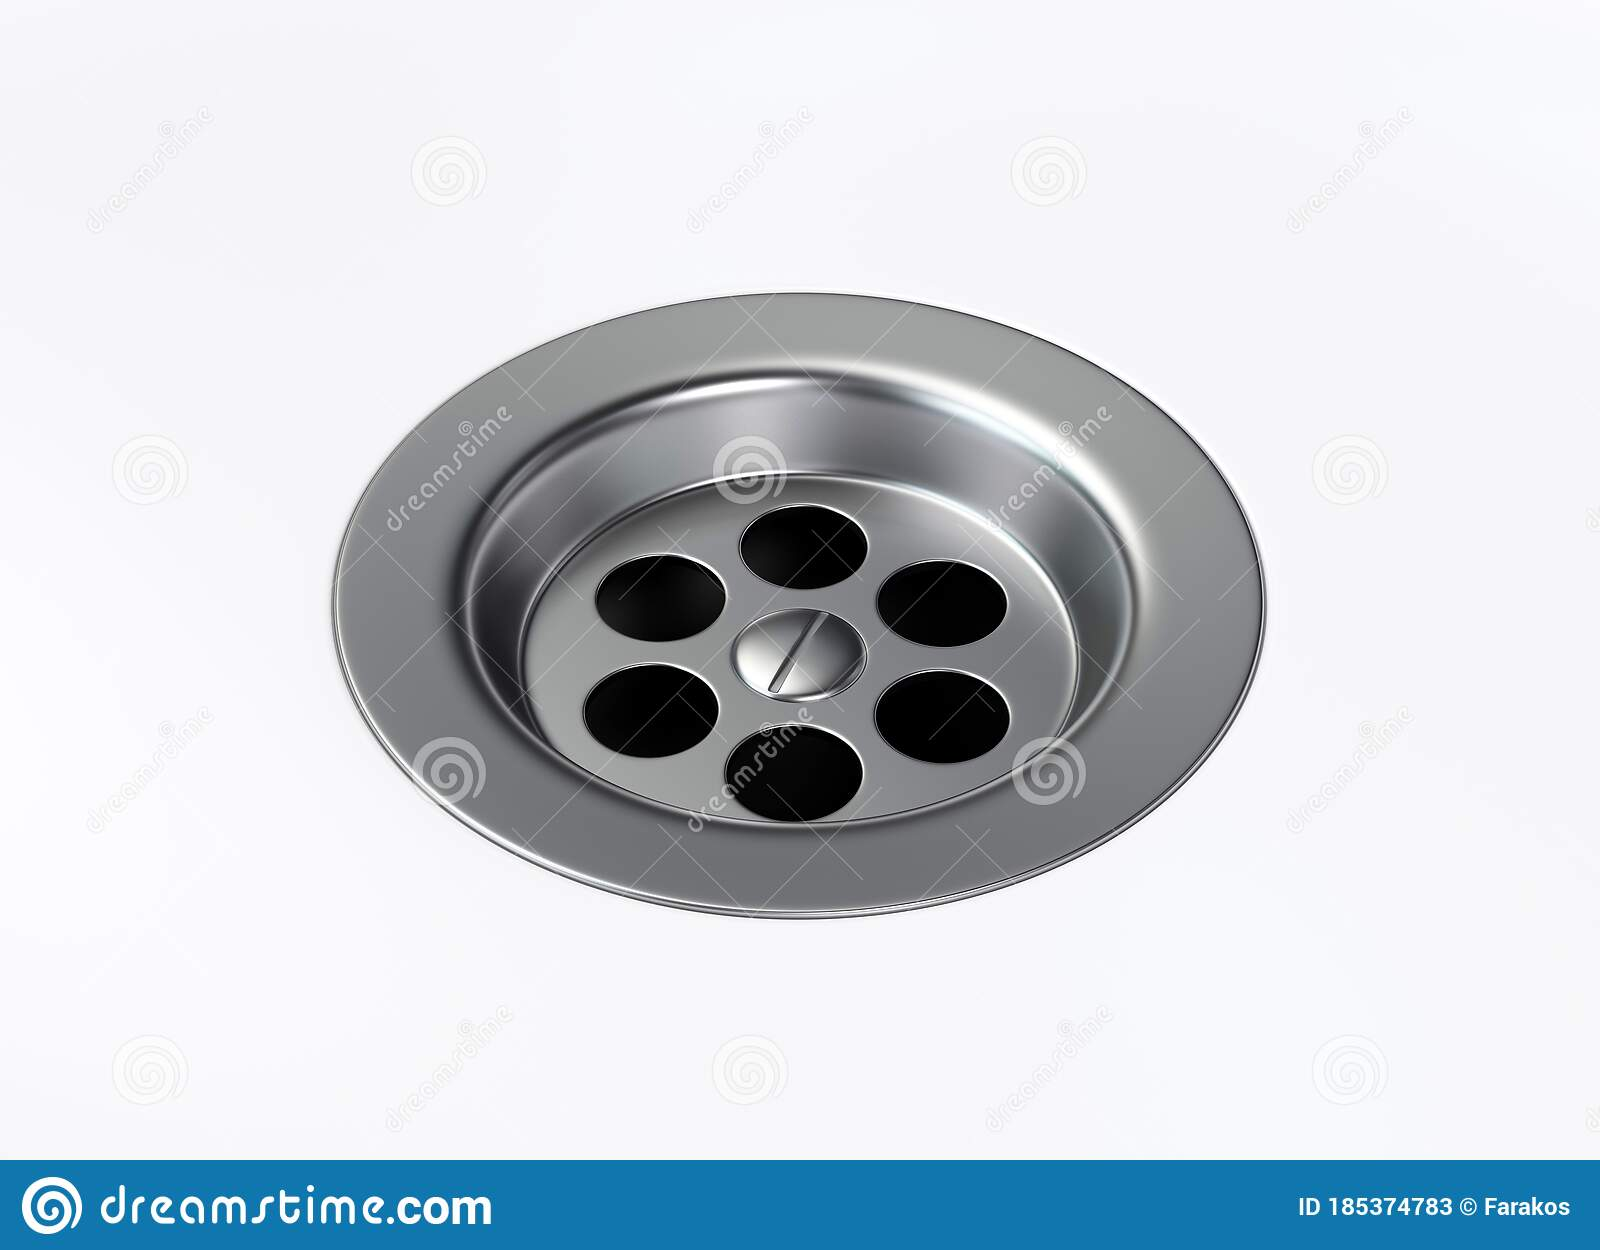 Stainless Steel Bathroom Sink Hole On White Background Stock Illustration Illustration Of Closeup Clean 185374783